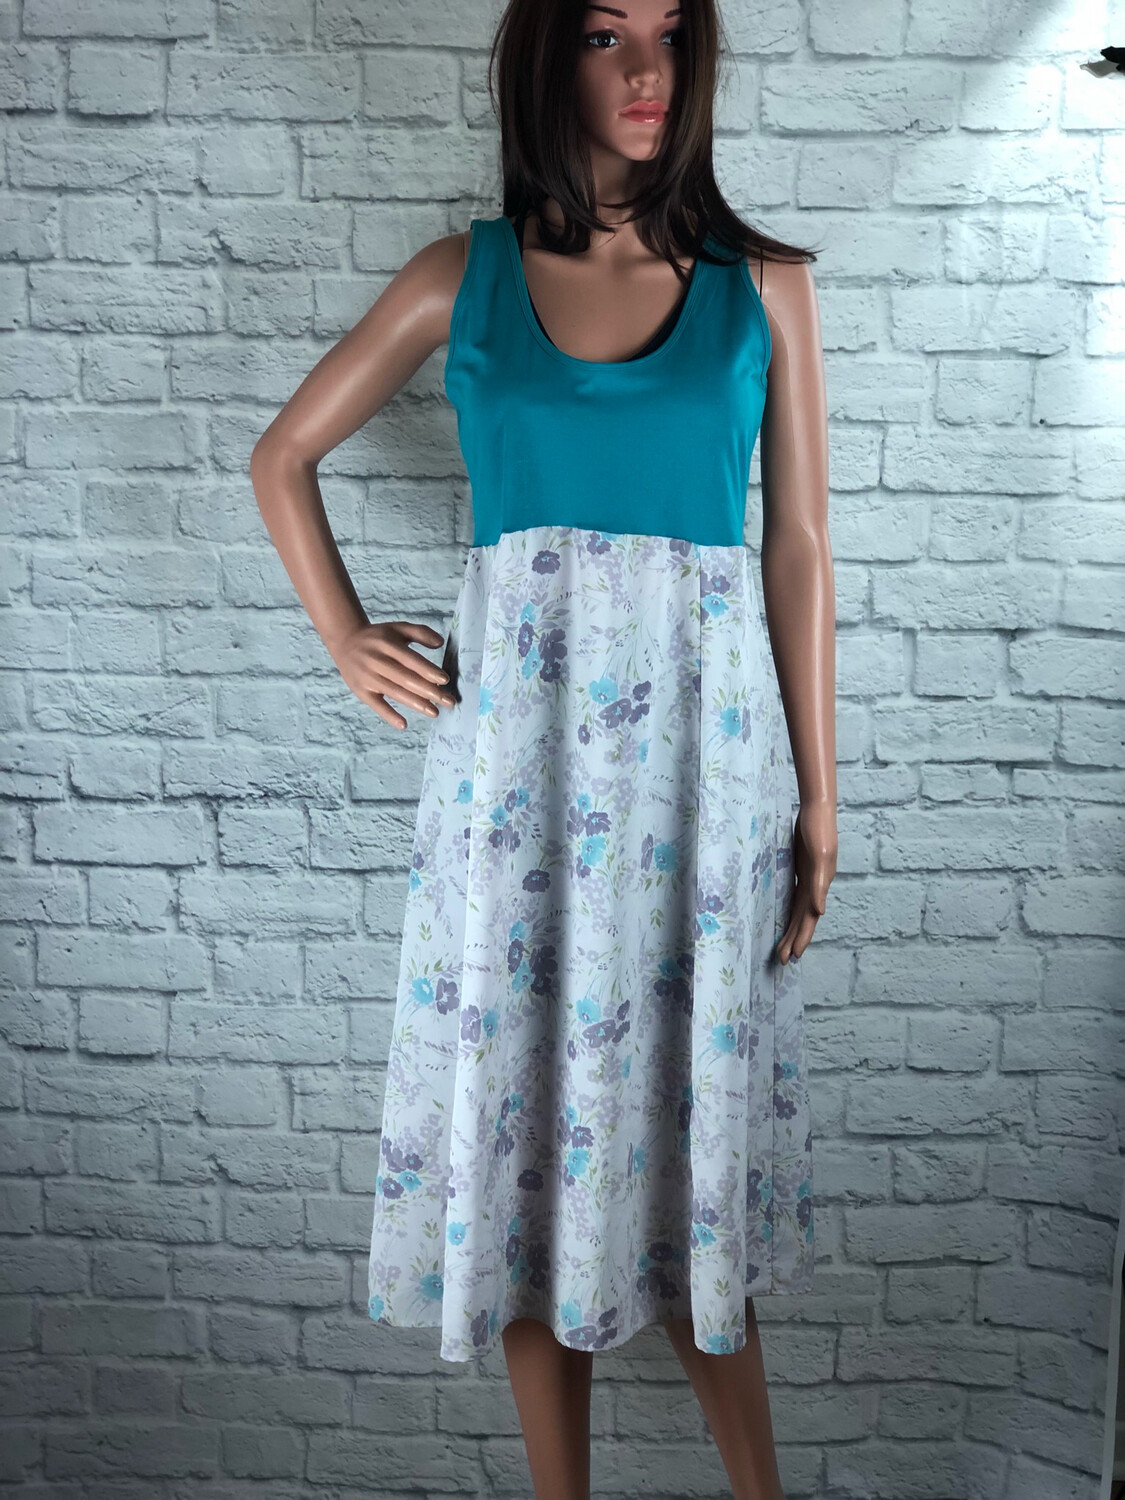 S Threads Upcycled Dress Shimmer Tank Floral Print Size L/XL